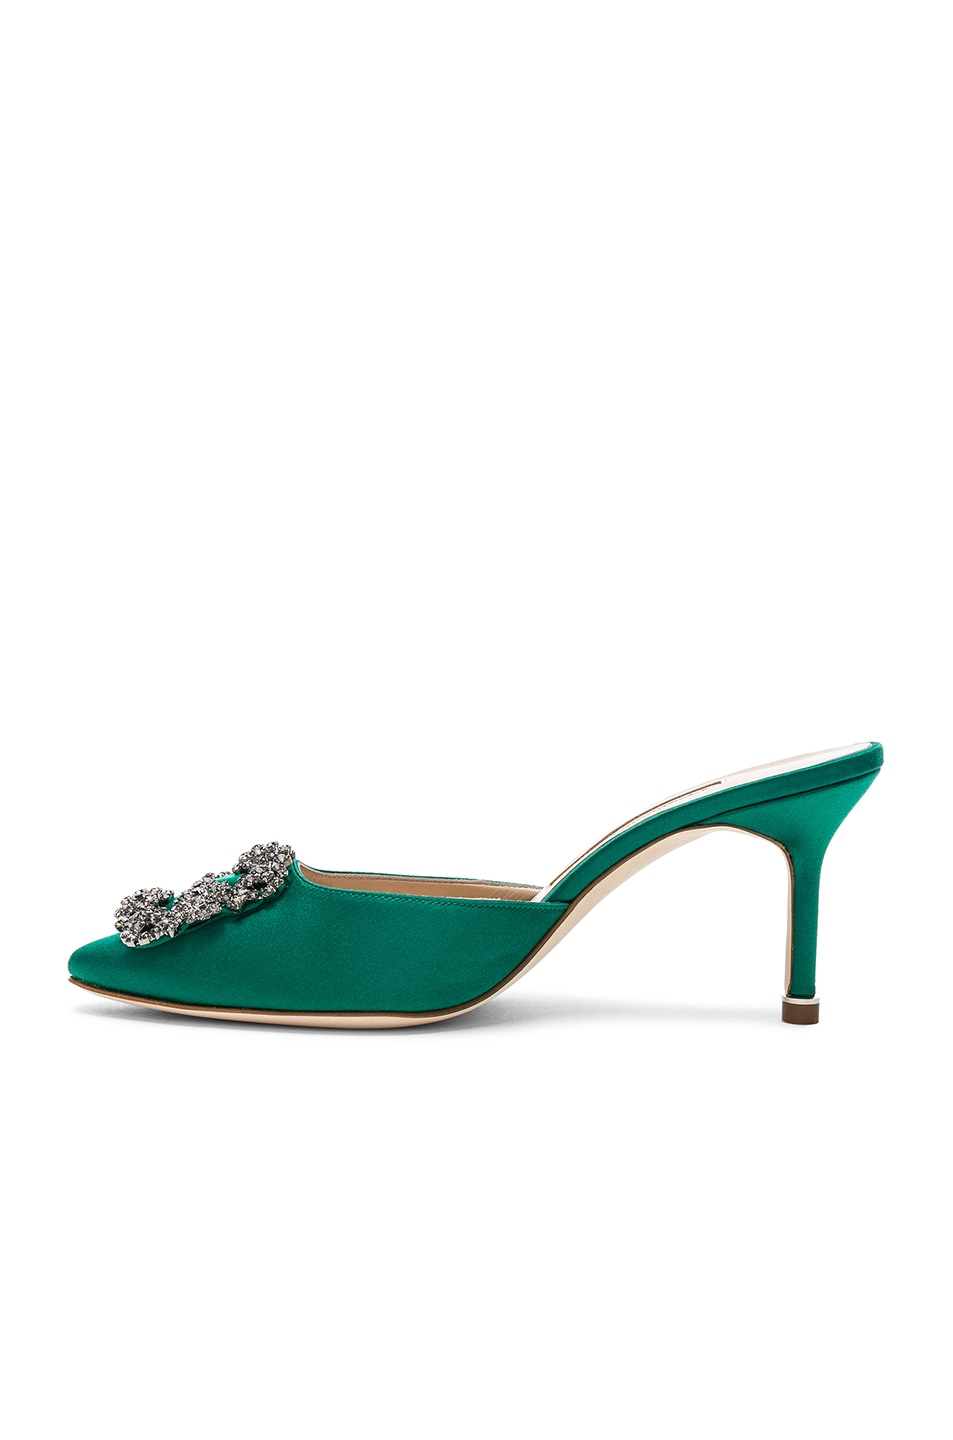 Image 5 of Manolo Blahnik Satin Hangisi 70 Mules in Green Satin